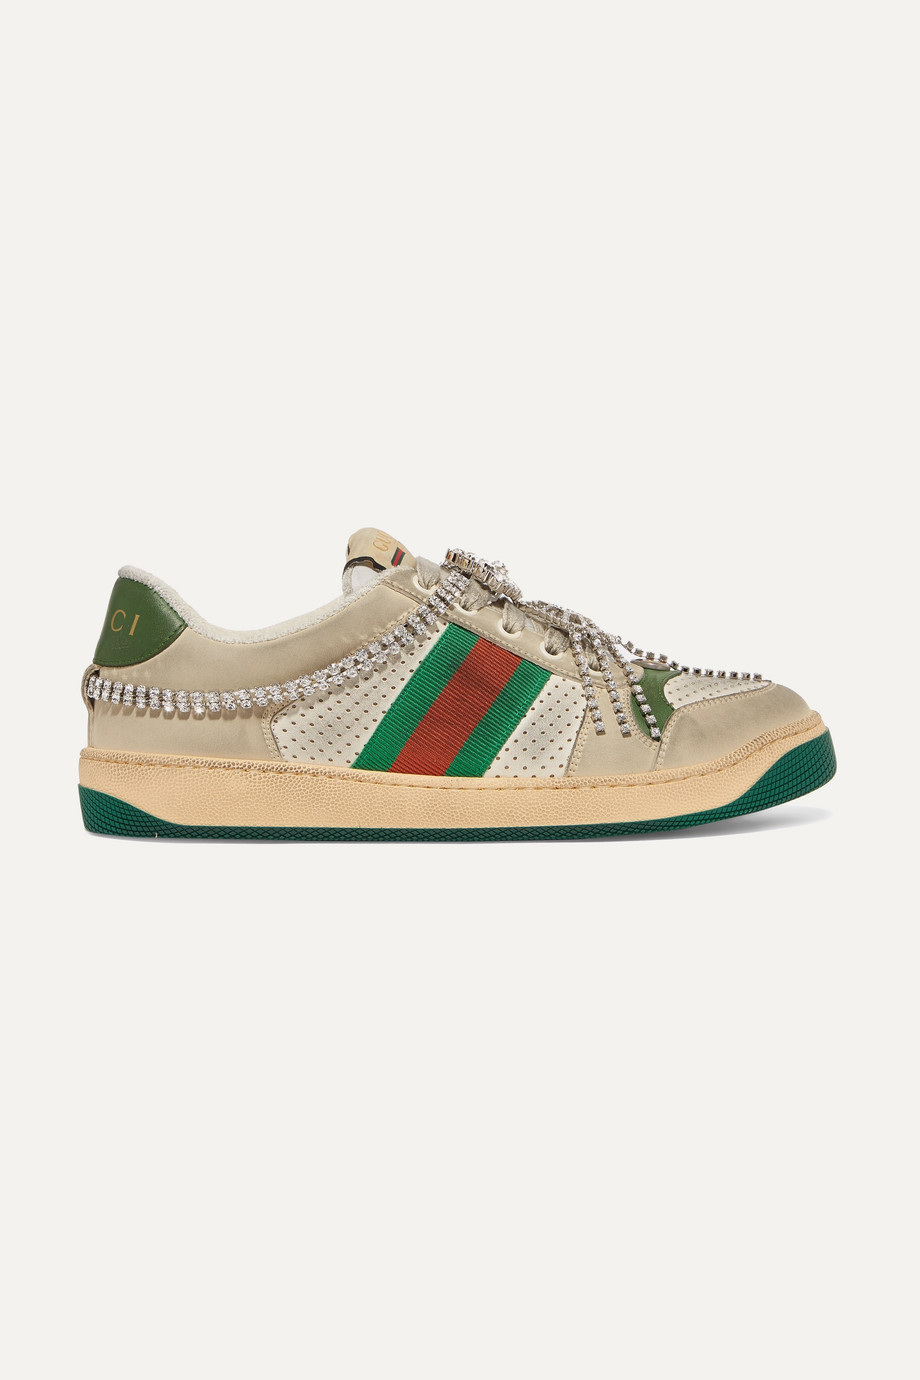 Gucci Screener embellished canvas-trimmed distressed leather sneakers